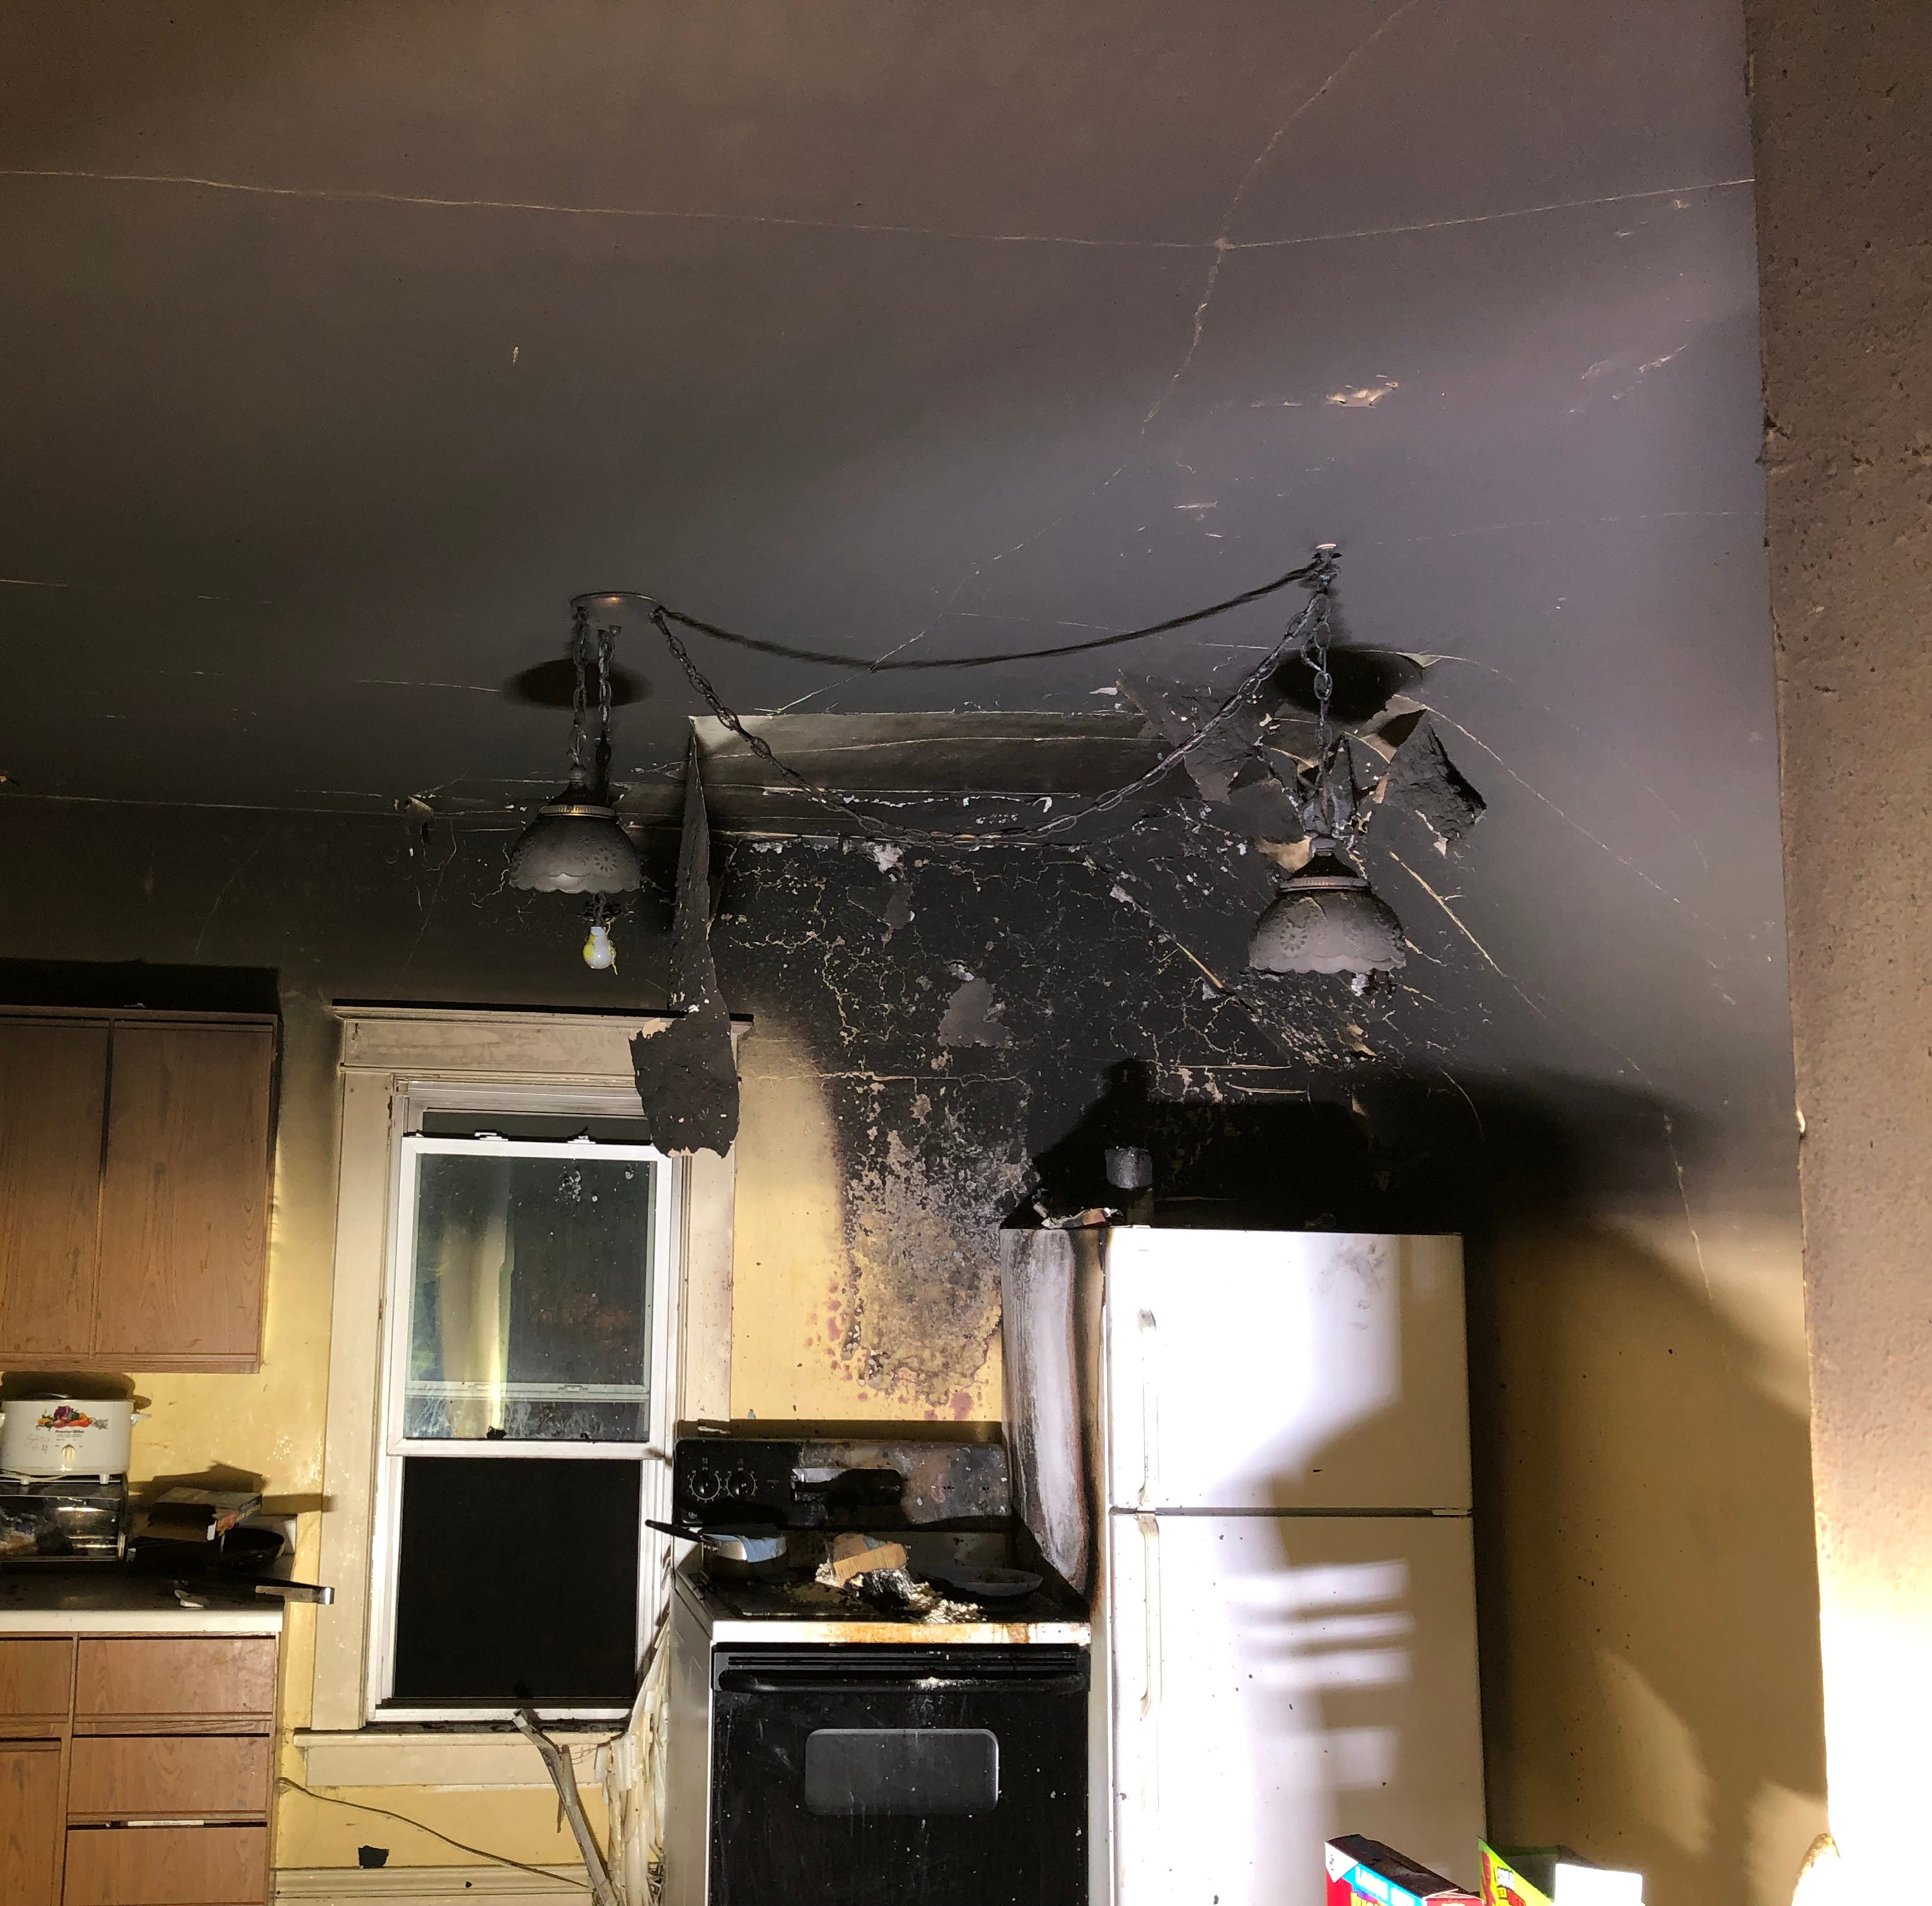 Fond du Lac home uninhabitable after unattended cooking caught fire Monday